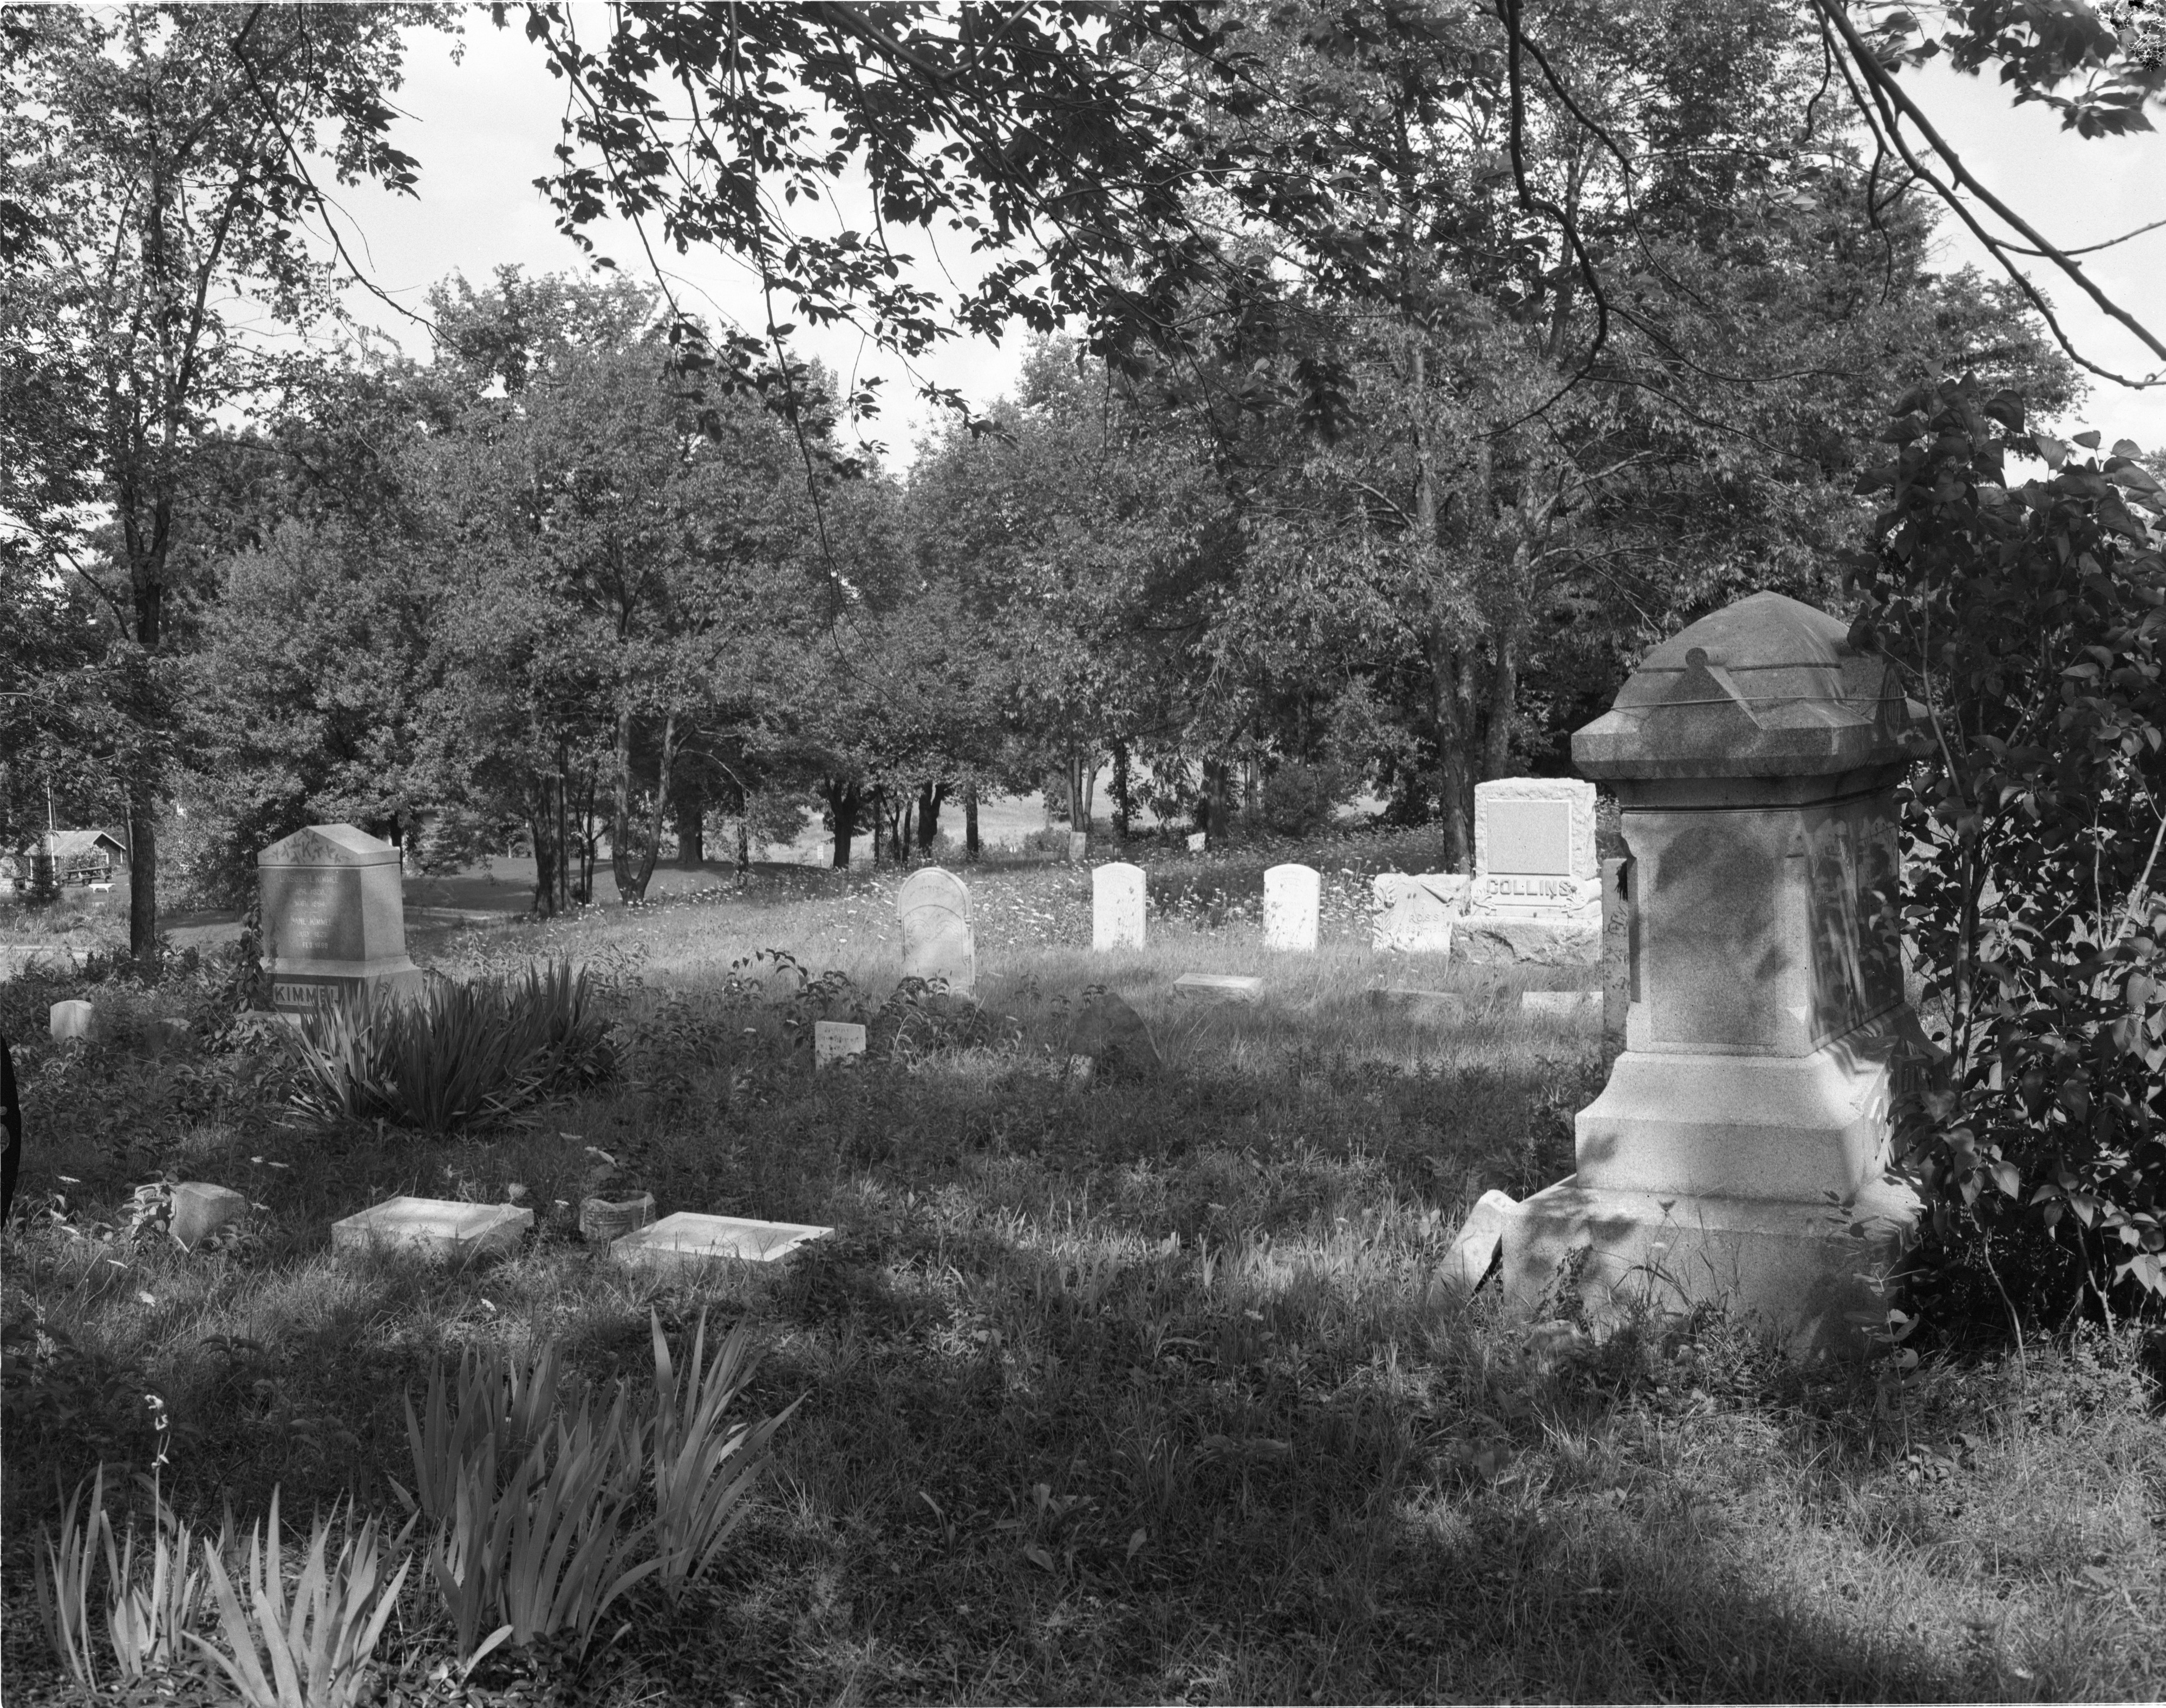 The Free Church Cemetery - Superior Township, August 1956 image